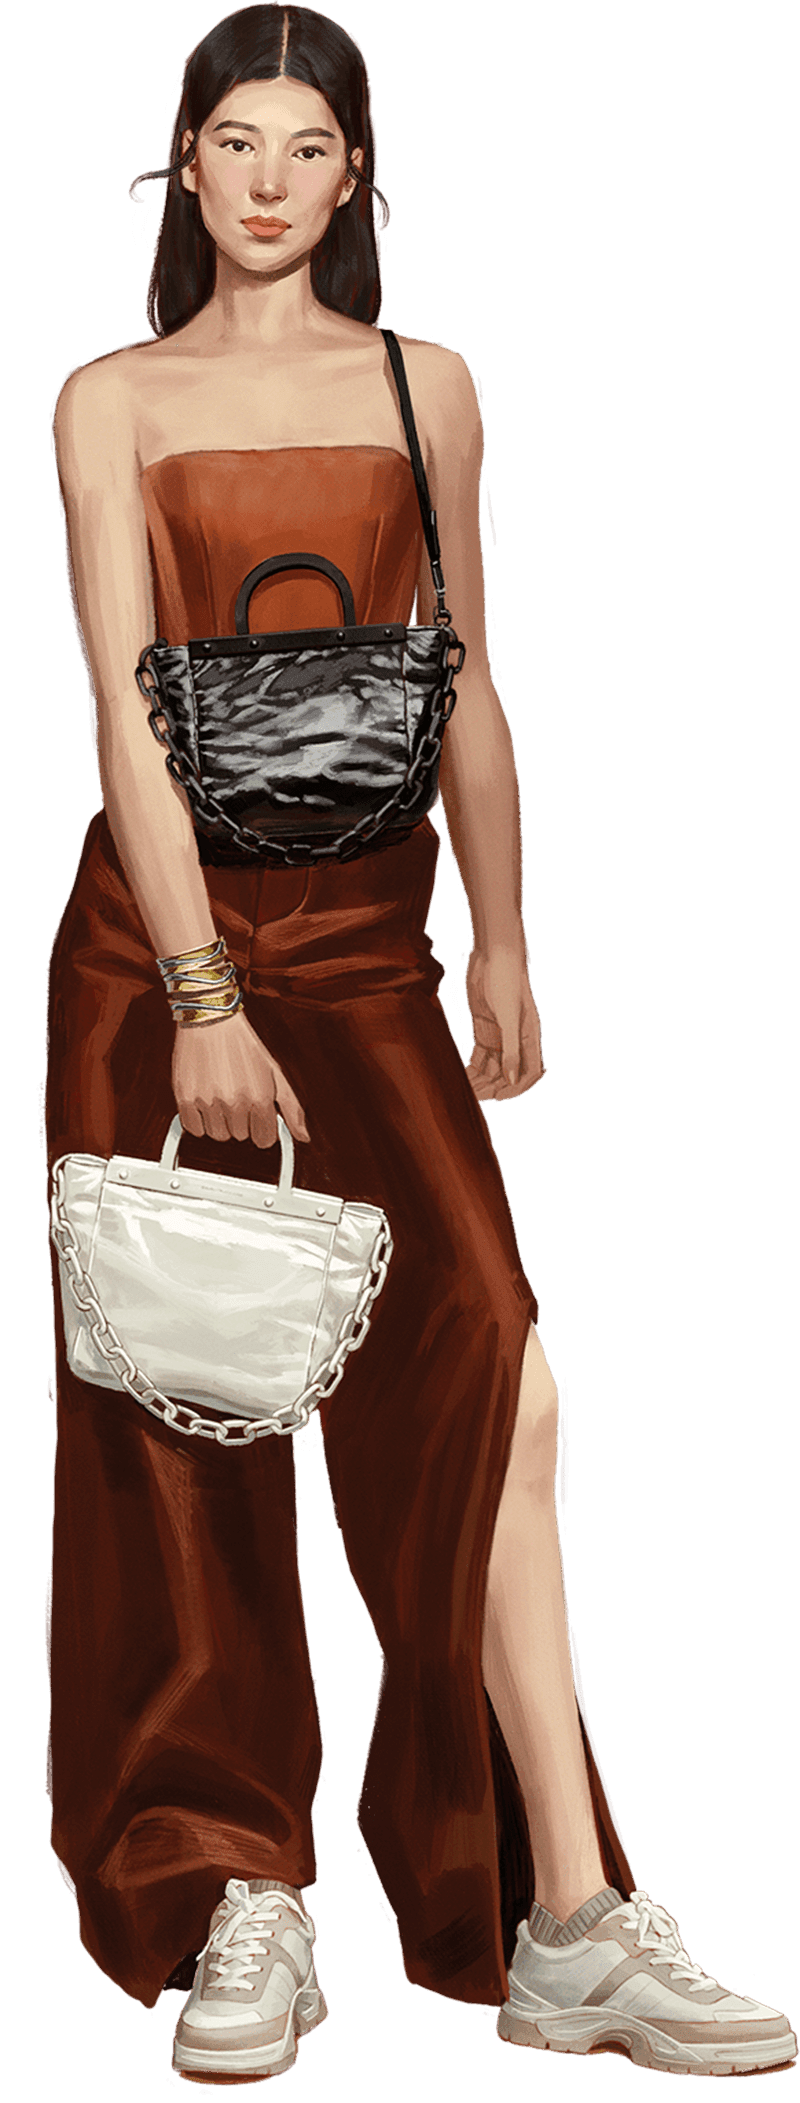 A compilation of illustrations from the CHARLES & KEITH Fall Winter 2020 campaign - CHARLES & KEITH - Web - Model 3